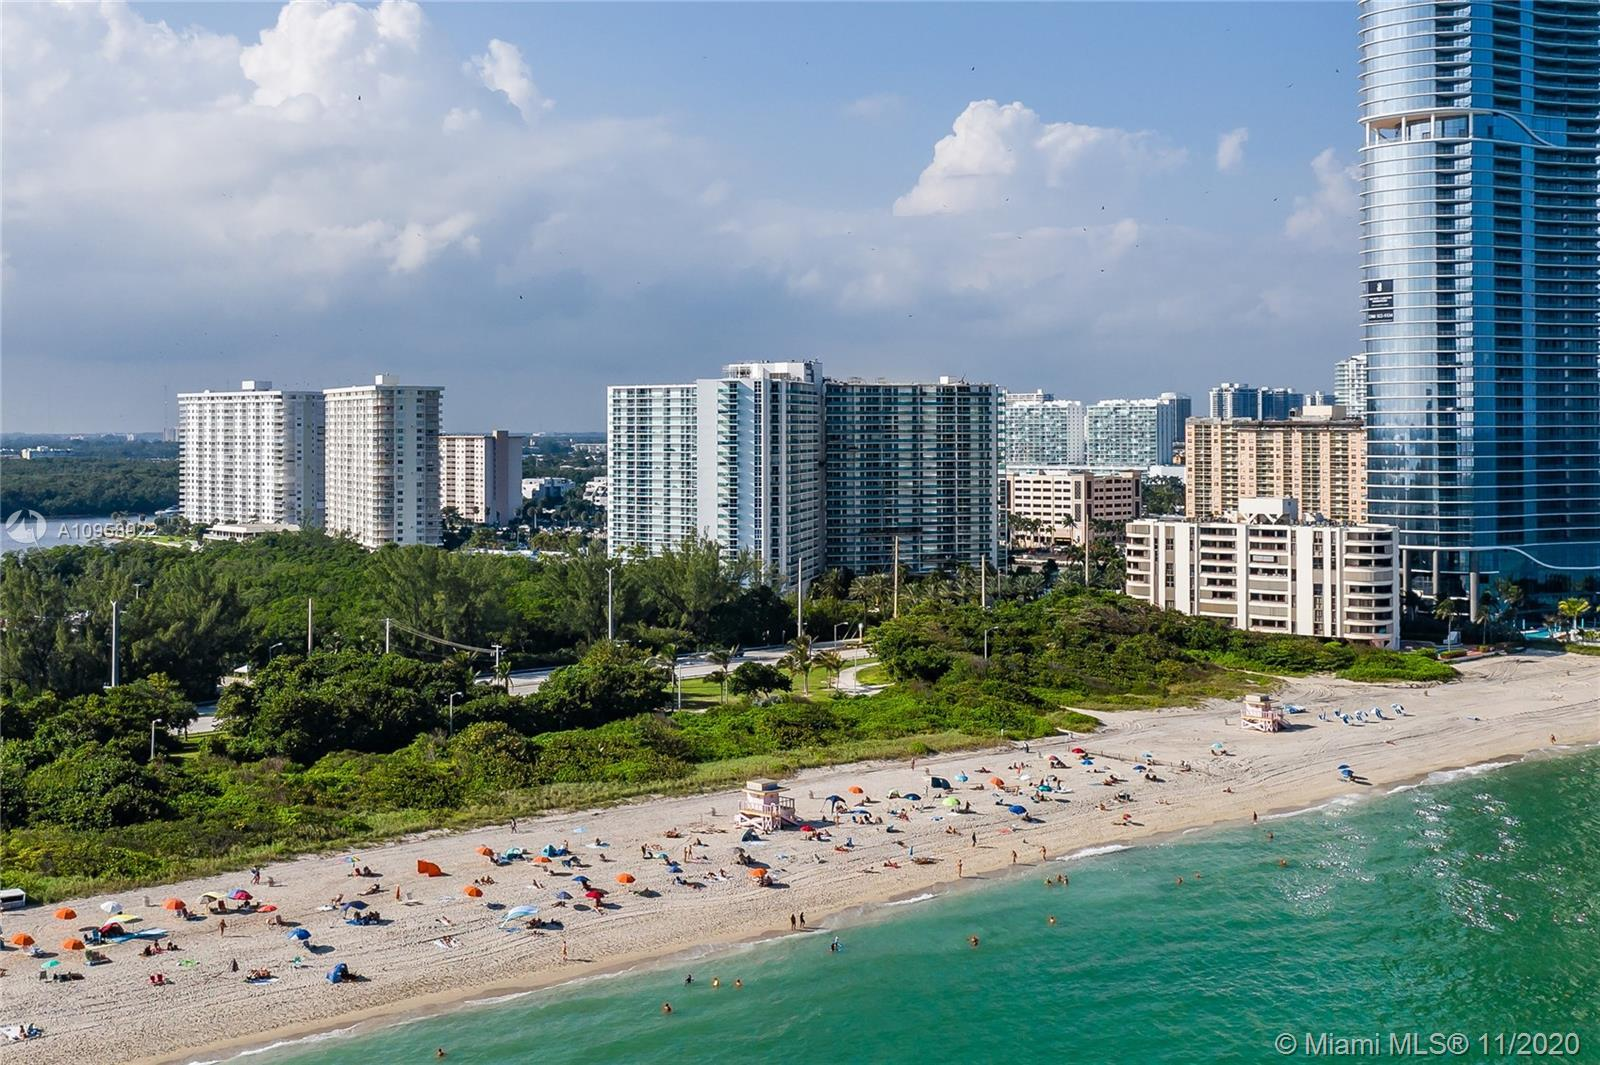 Amazing Penthouse in Sunny Isles Beach! This Penthouse offers Unobstructed & Breathtaking Ocean View